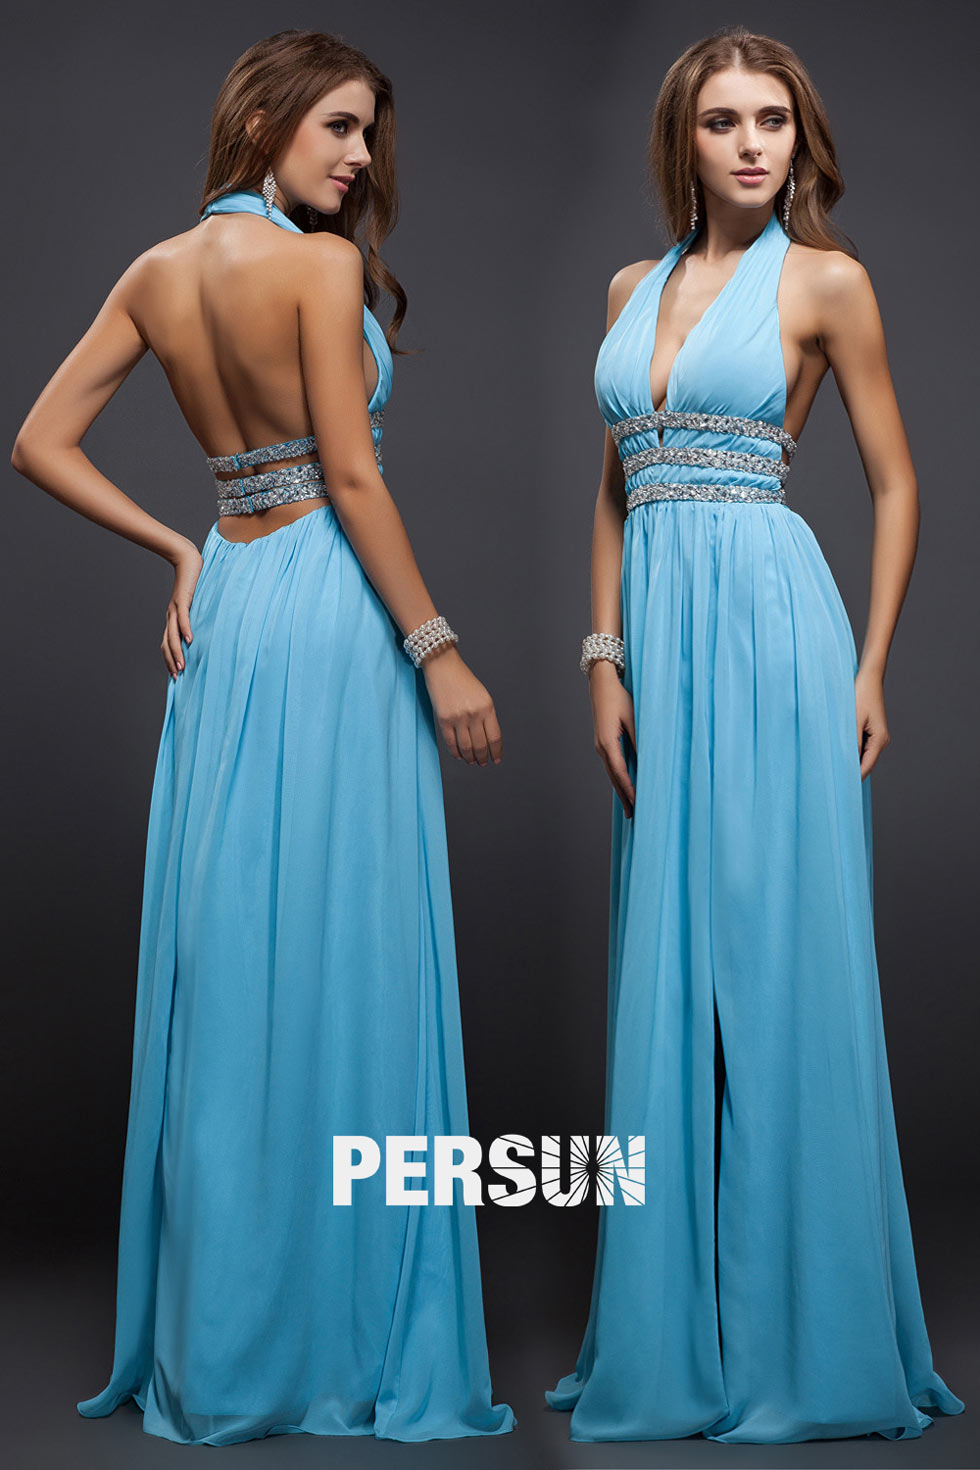 charming Beading V neck Halter bacless azury blue Chiffon A line Evening fomal prom Dress